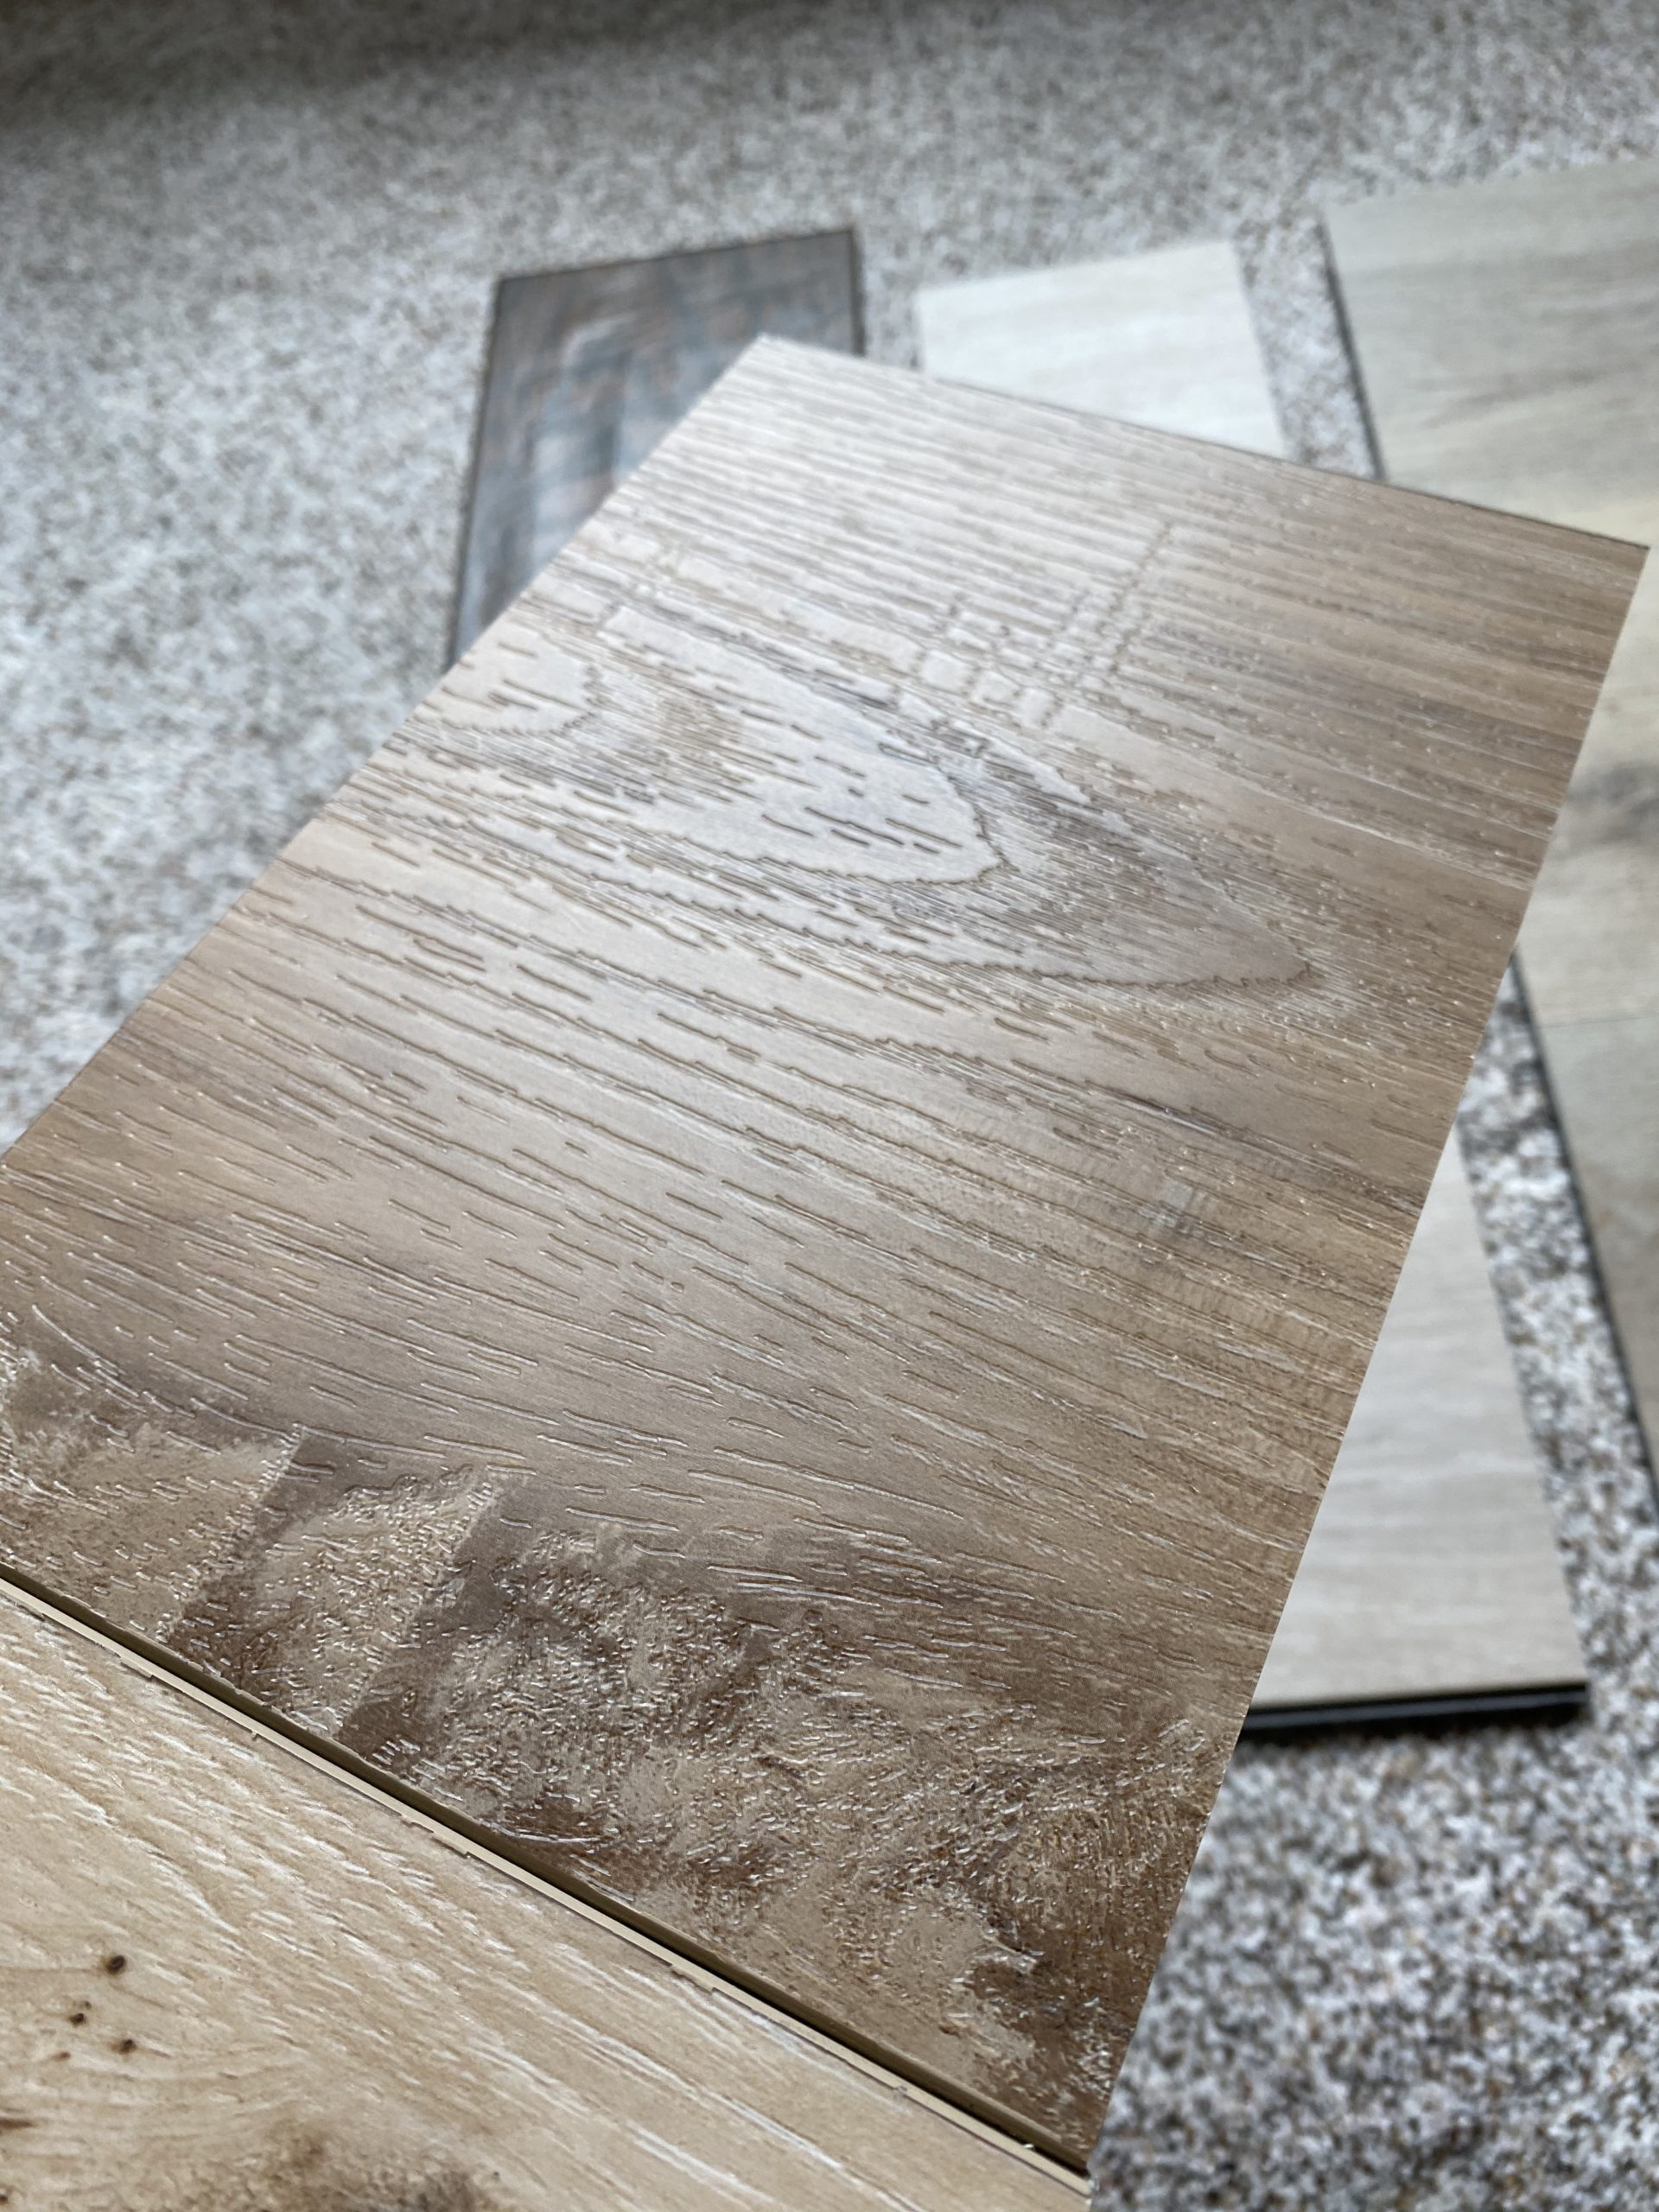 How to Choose Flooring: Cali Seaboard Oak Vinyl Close Up